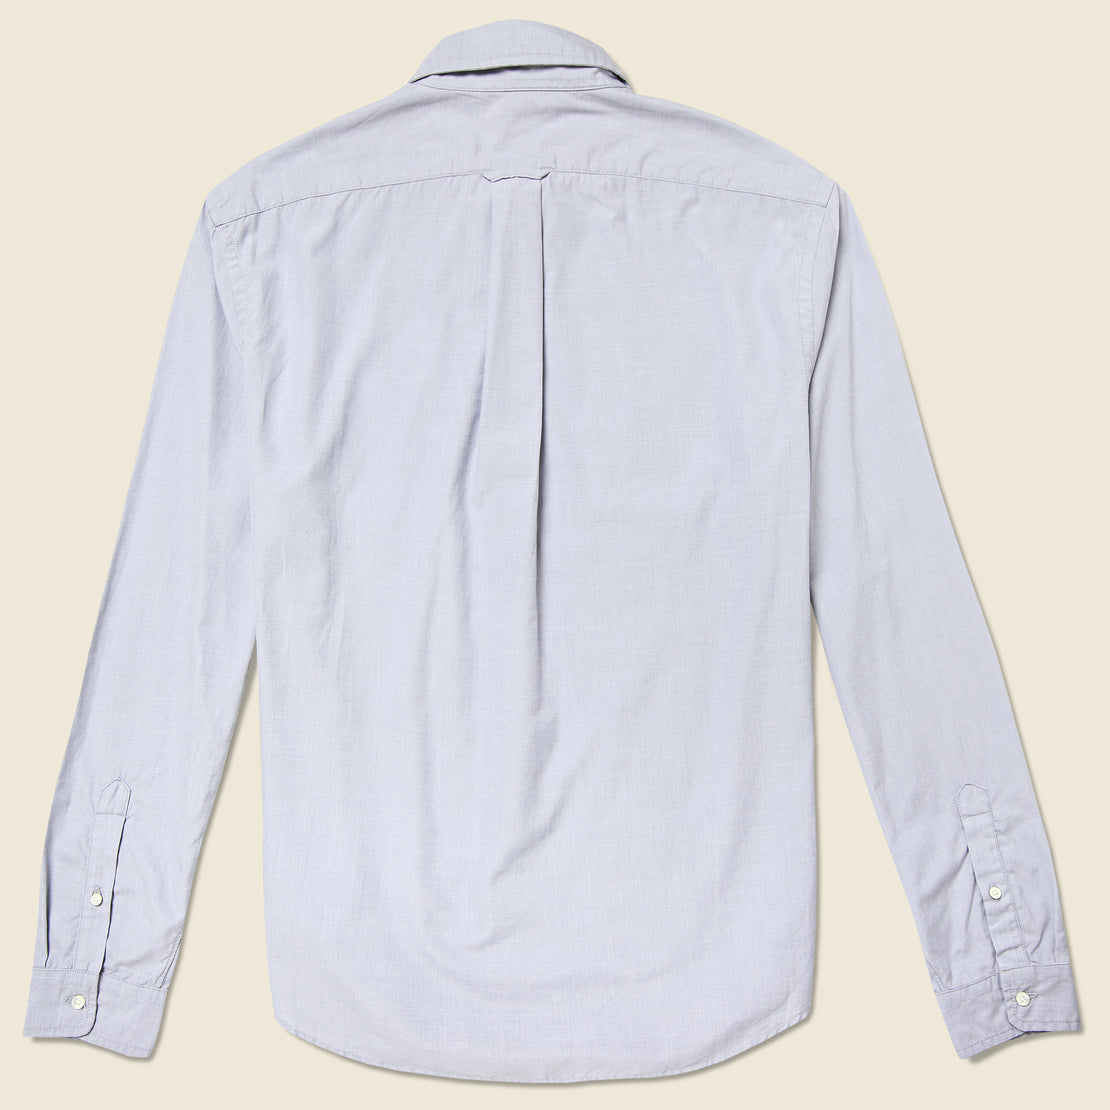 End On End School Shirt - Grey - Alex Mill - STAG Provisions - Tops - L/S Woven - Solid